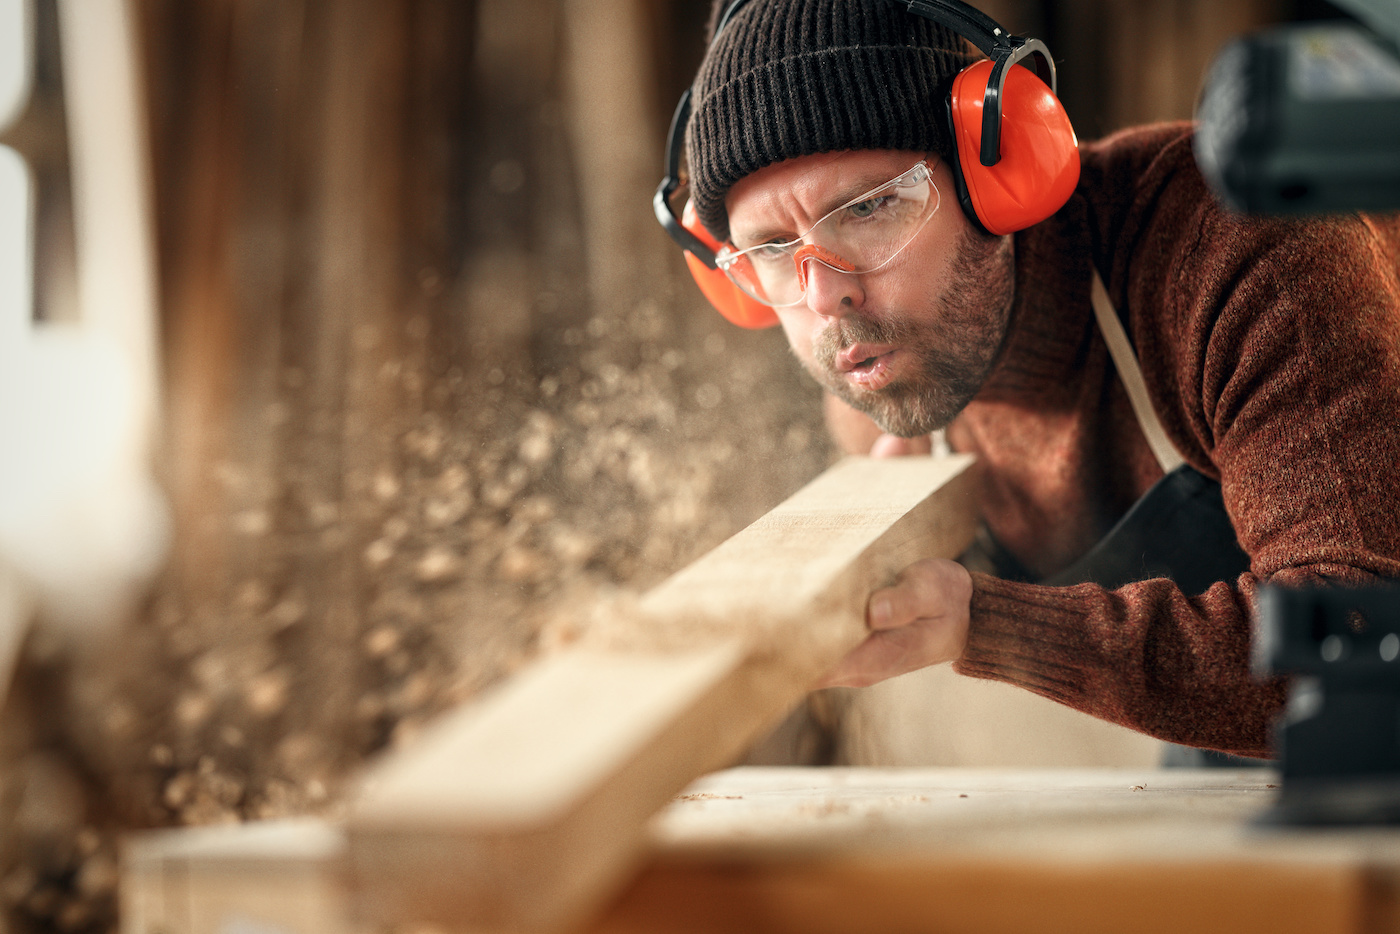 Adult male woodworker in protective goggles and headphones blowing sawdust from wooden detail while working in carpentry workshop